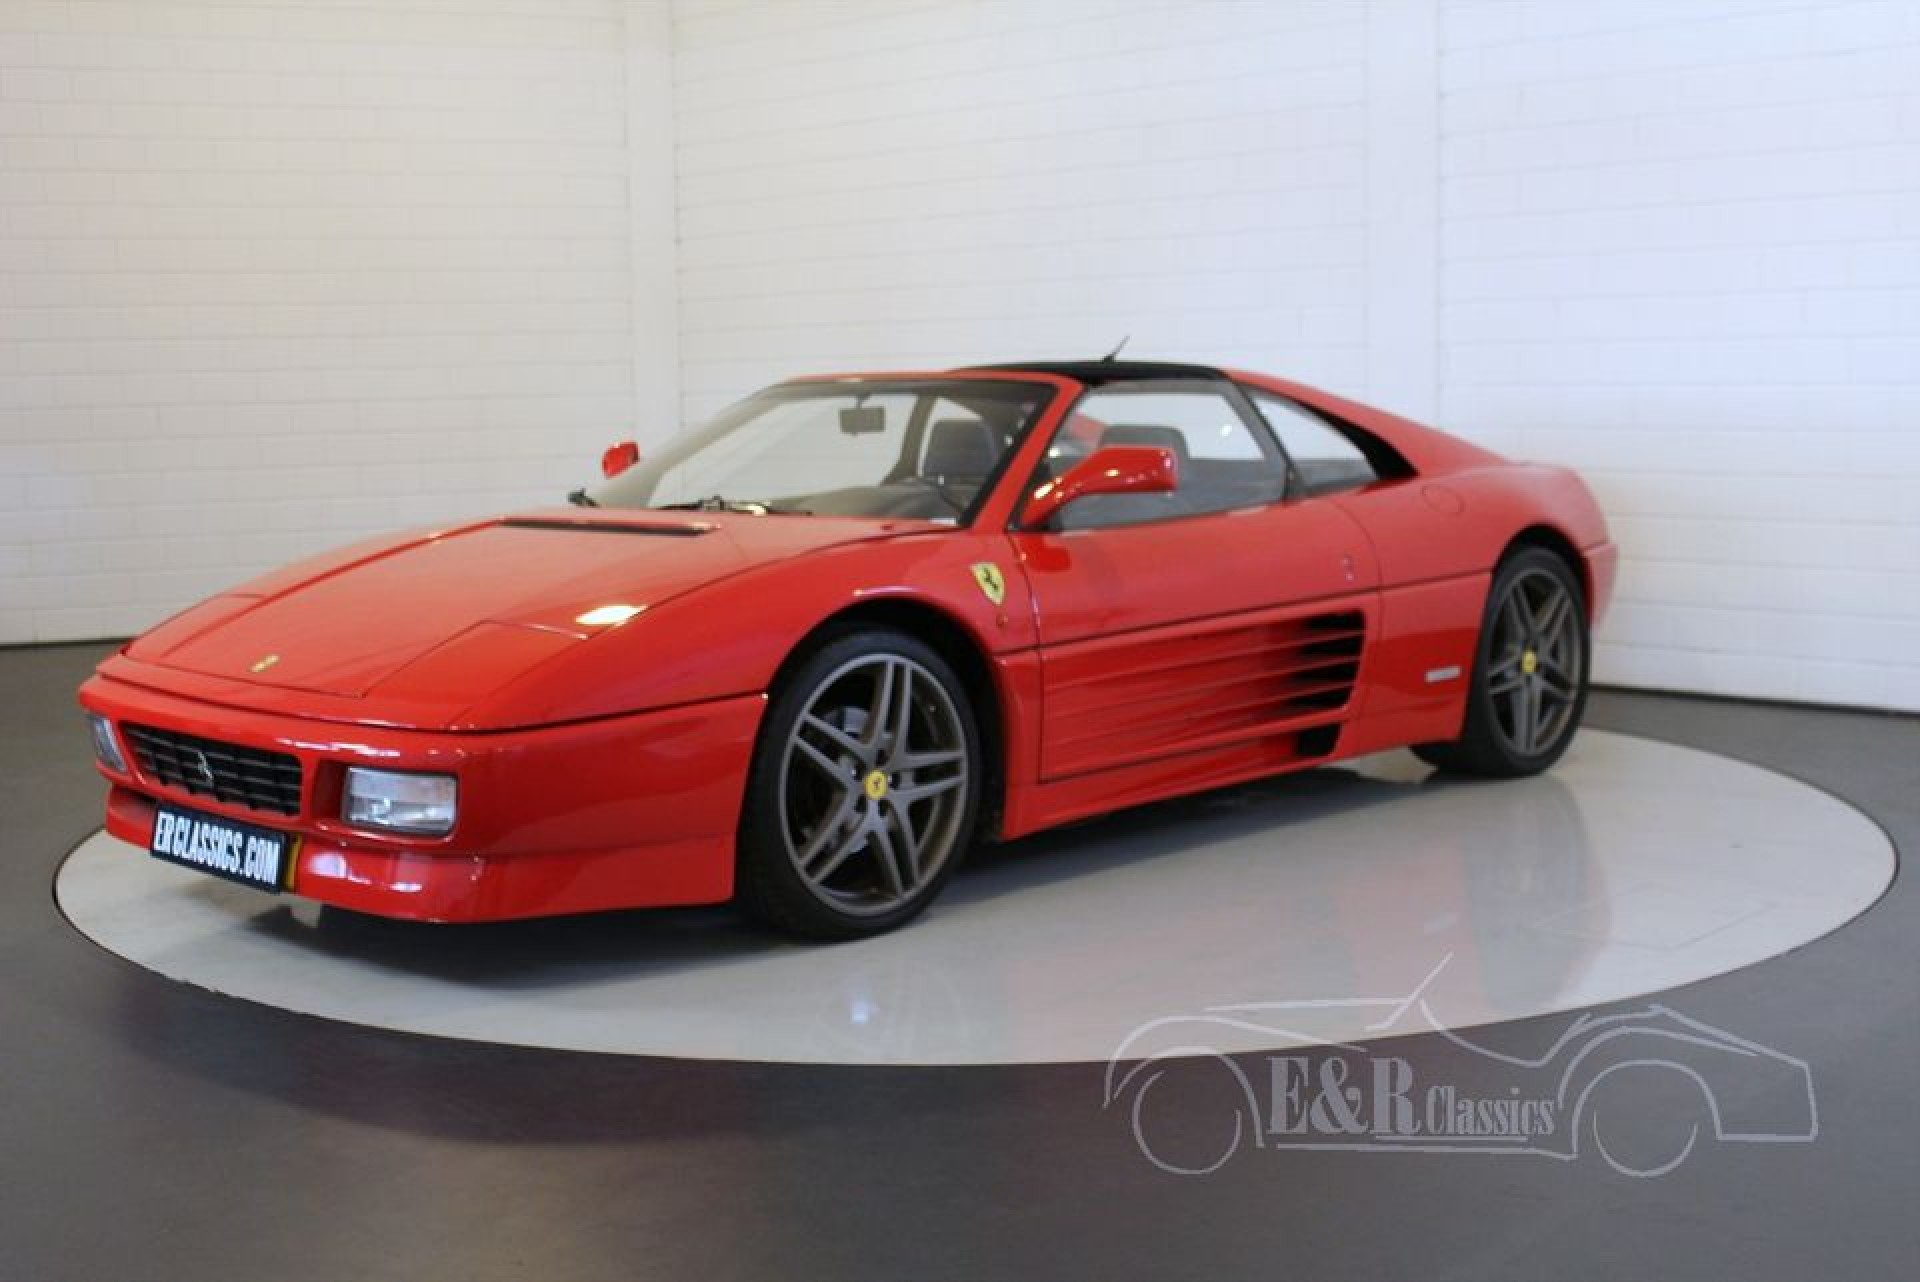 ferrari 348 ts targa 1992 vendre erclassics. Black Bedroom Furniture Sets. Home Design Ideas